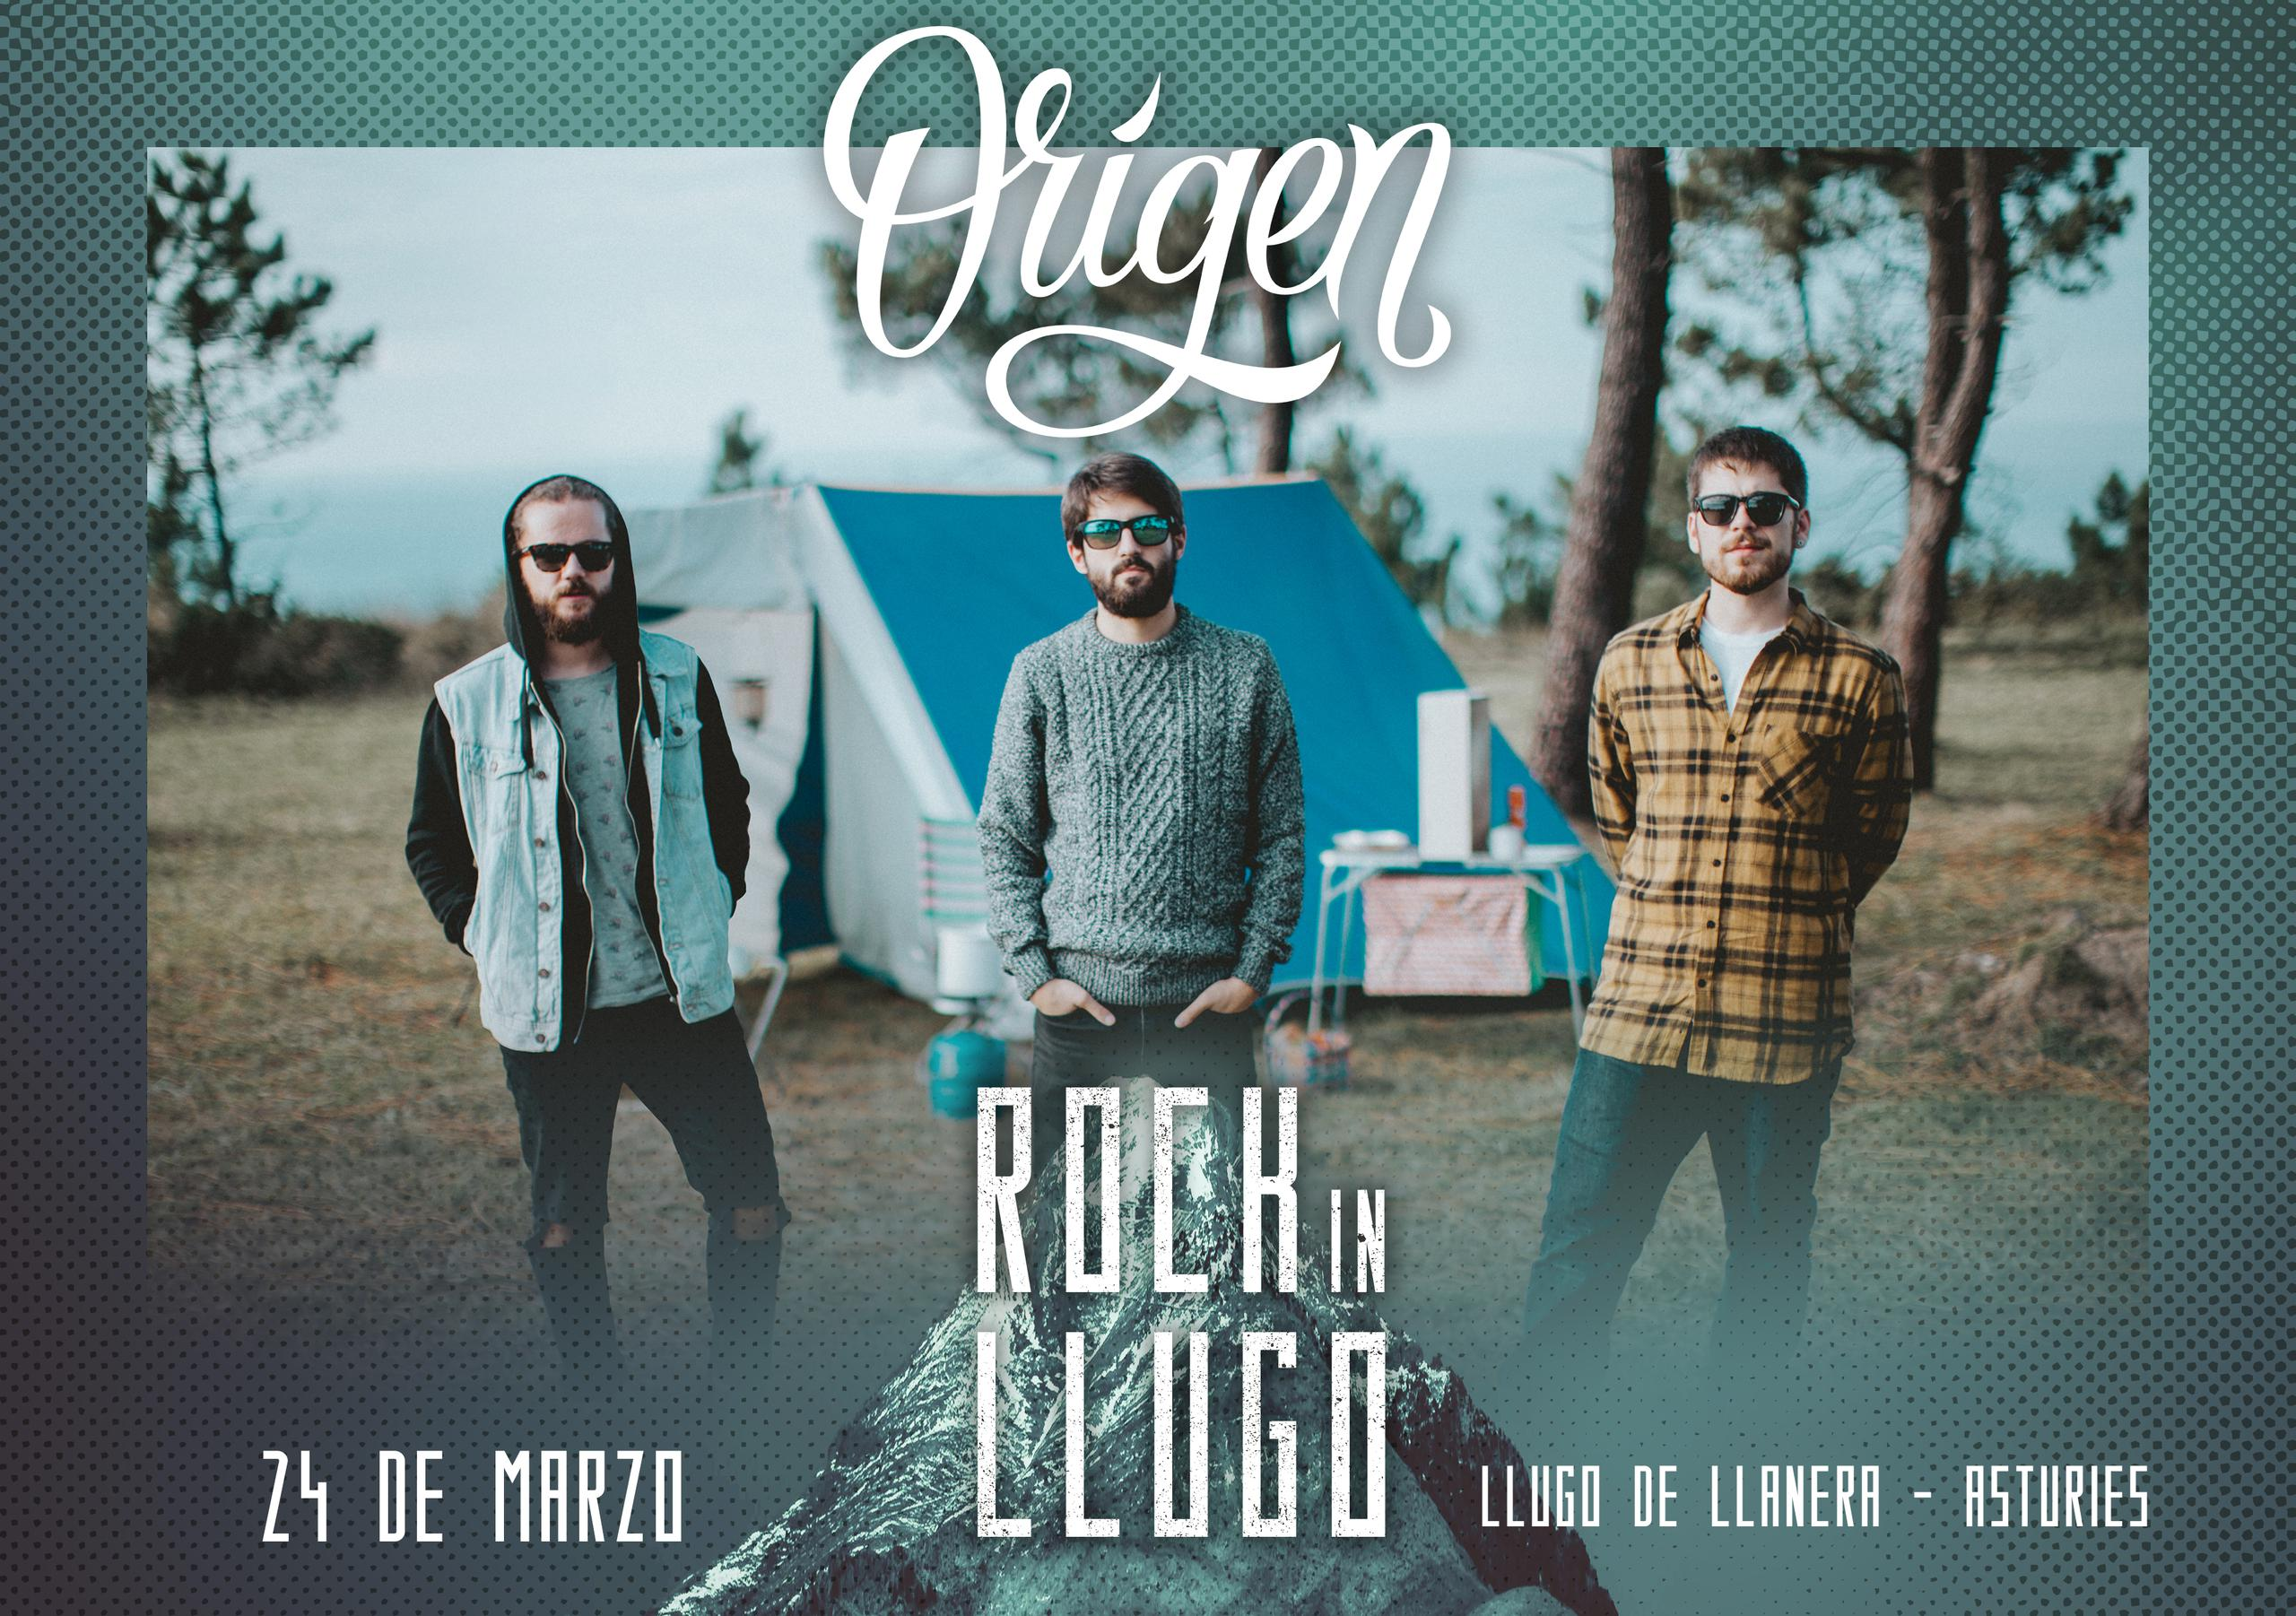 ¡¡Origen estarán en el Rock in Llugo!!